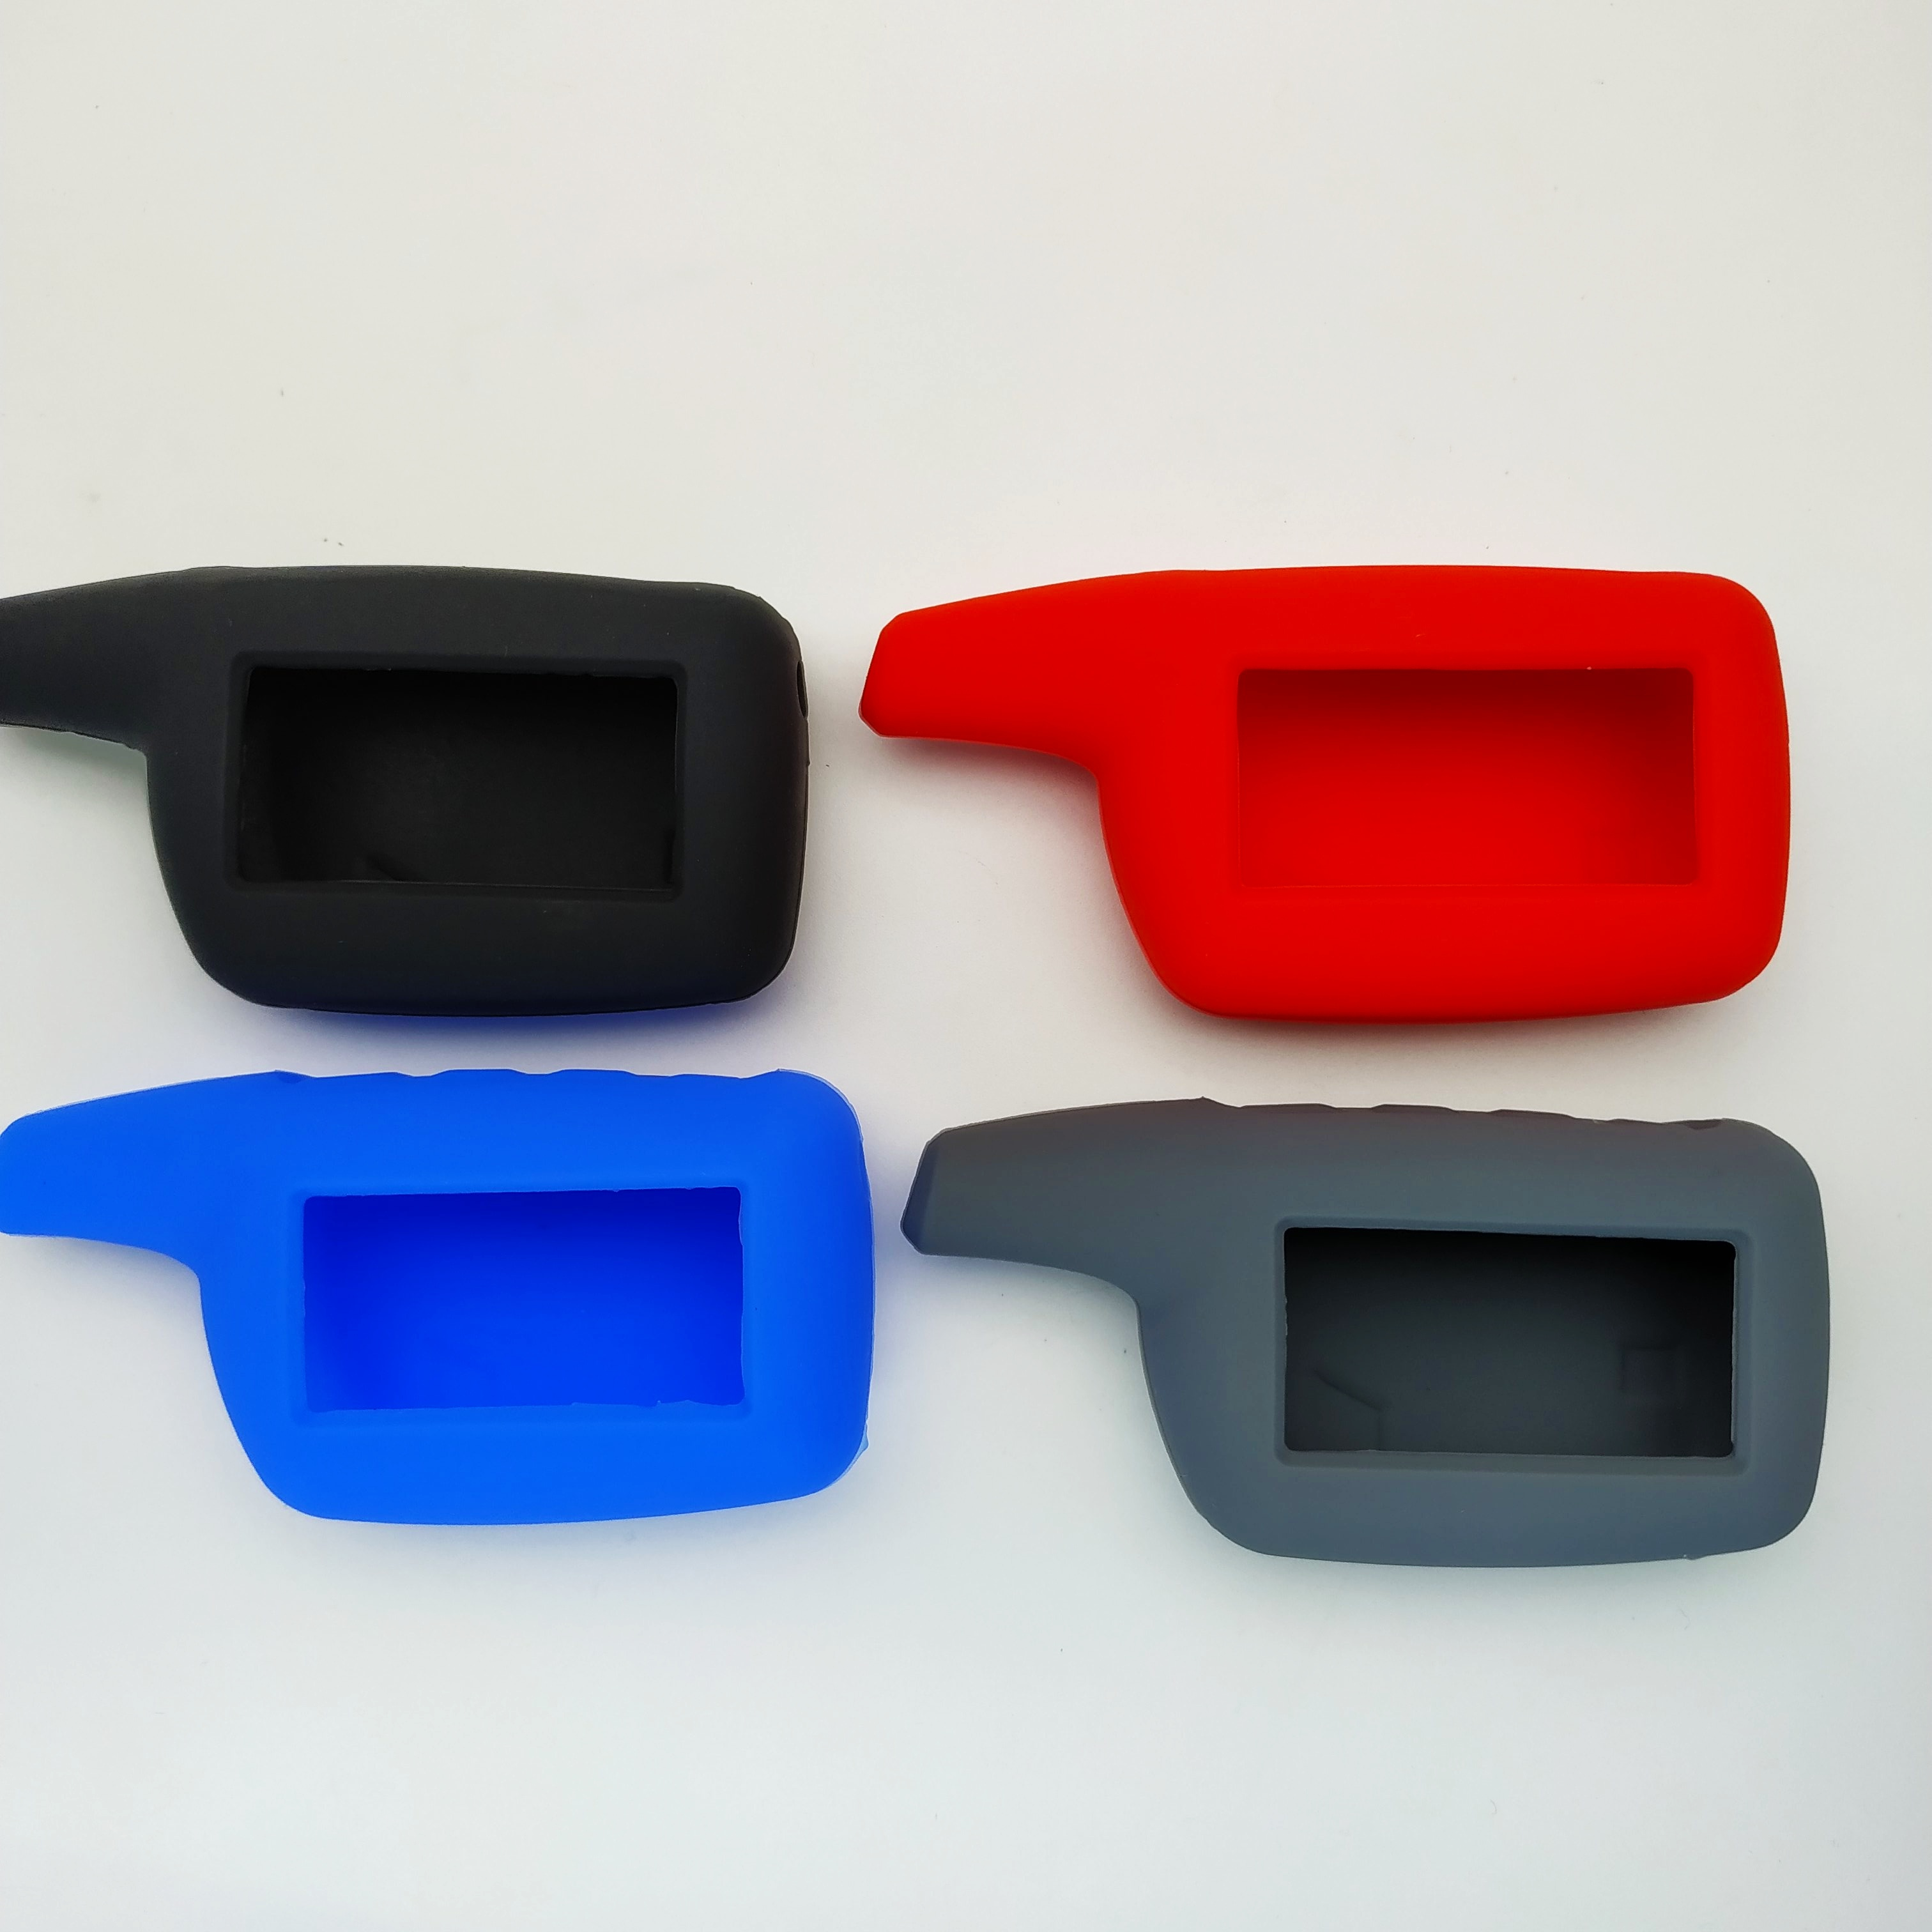 Russian Version Logicar 4 Silicone Case For Scher-khan Logicar 4 Lcd Remote Two Way Car Remote Controller